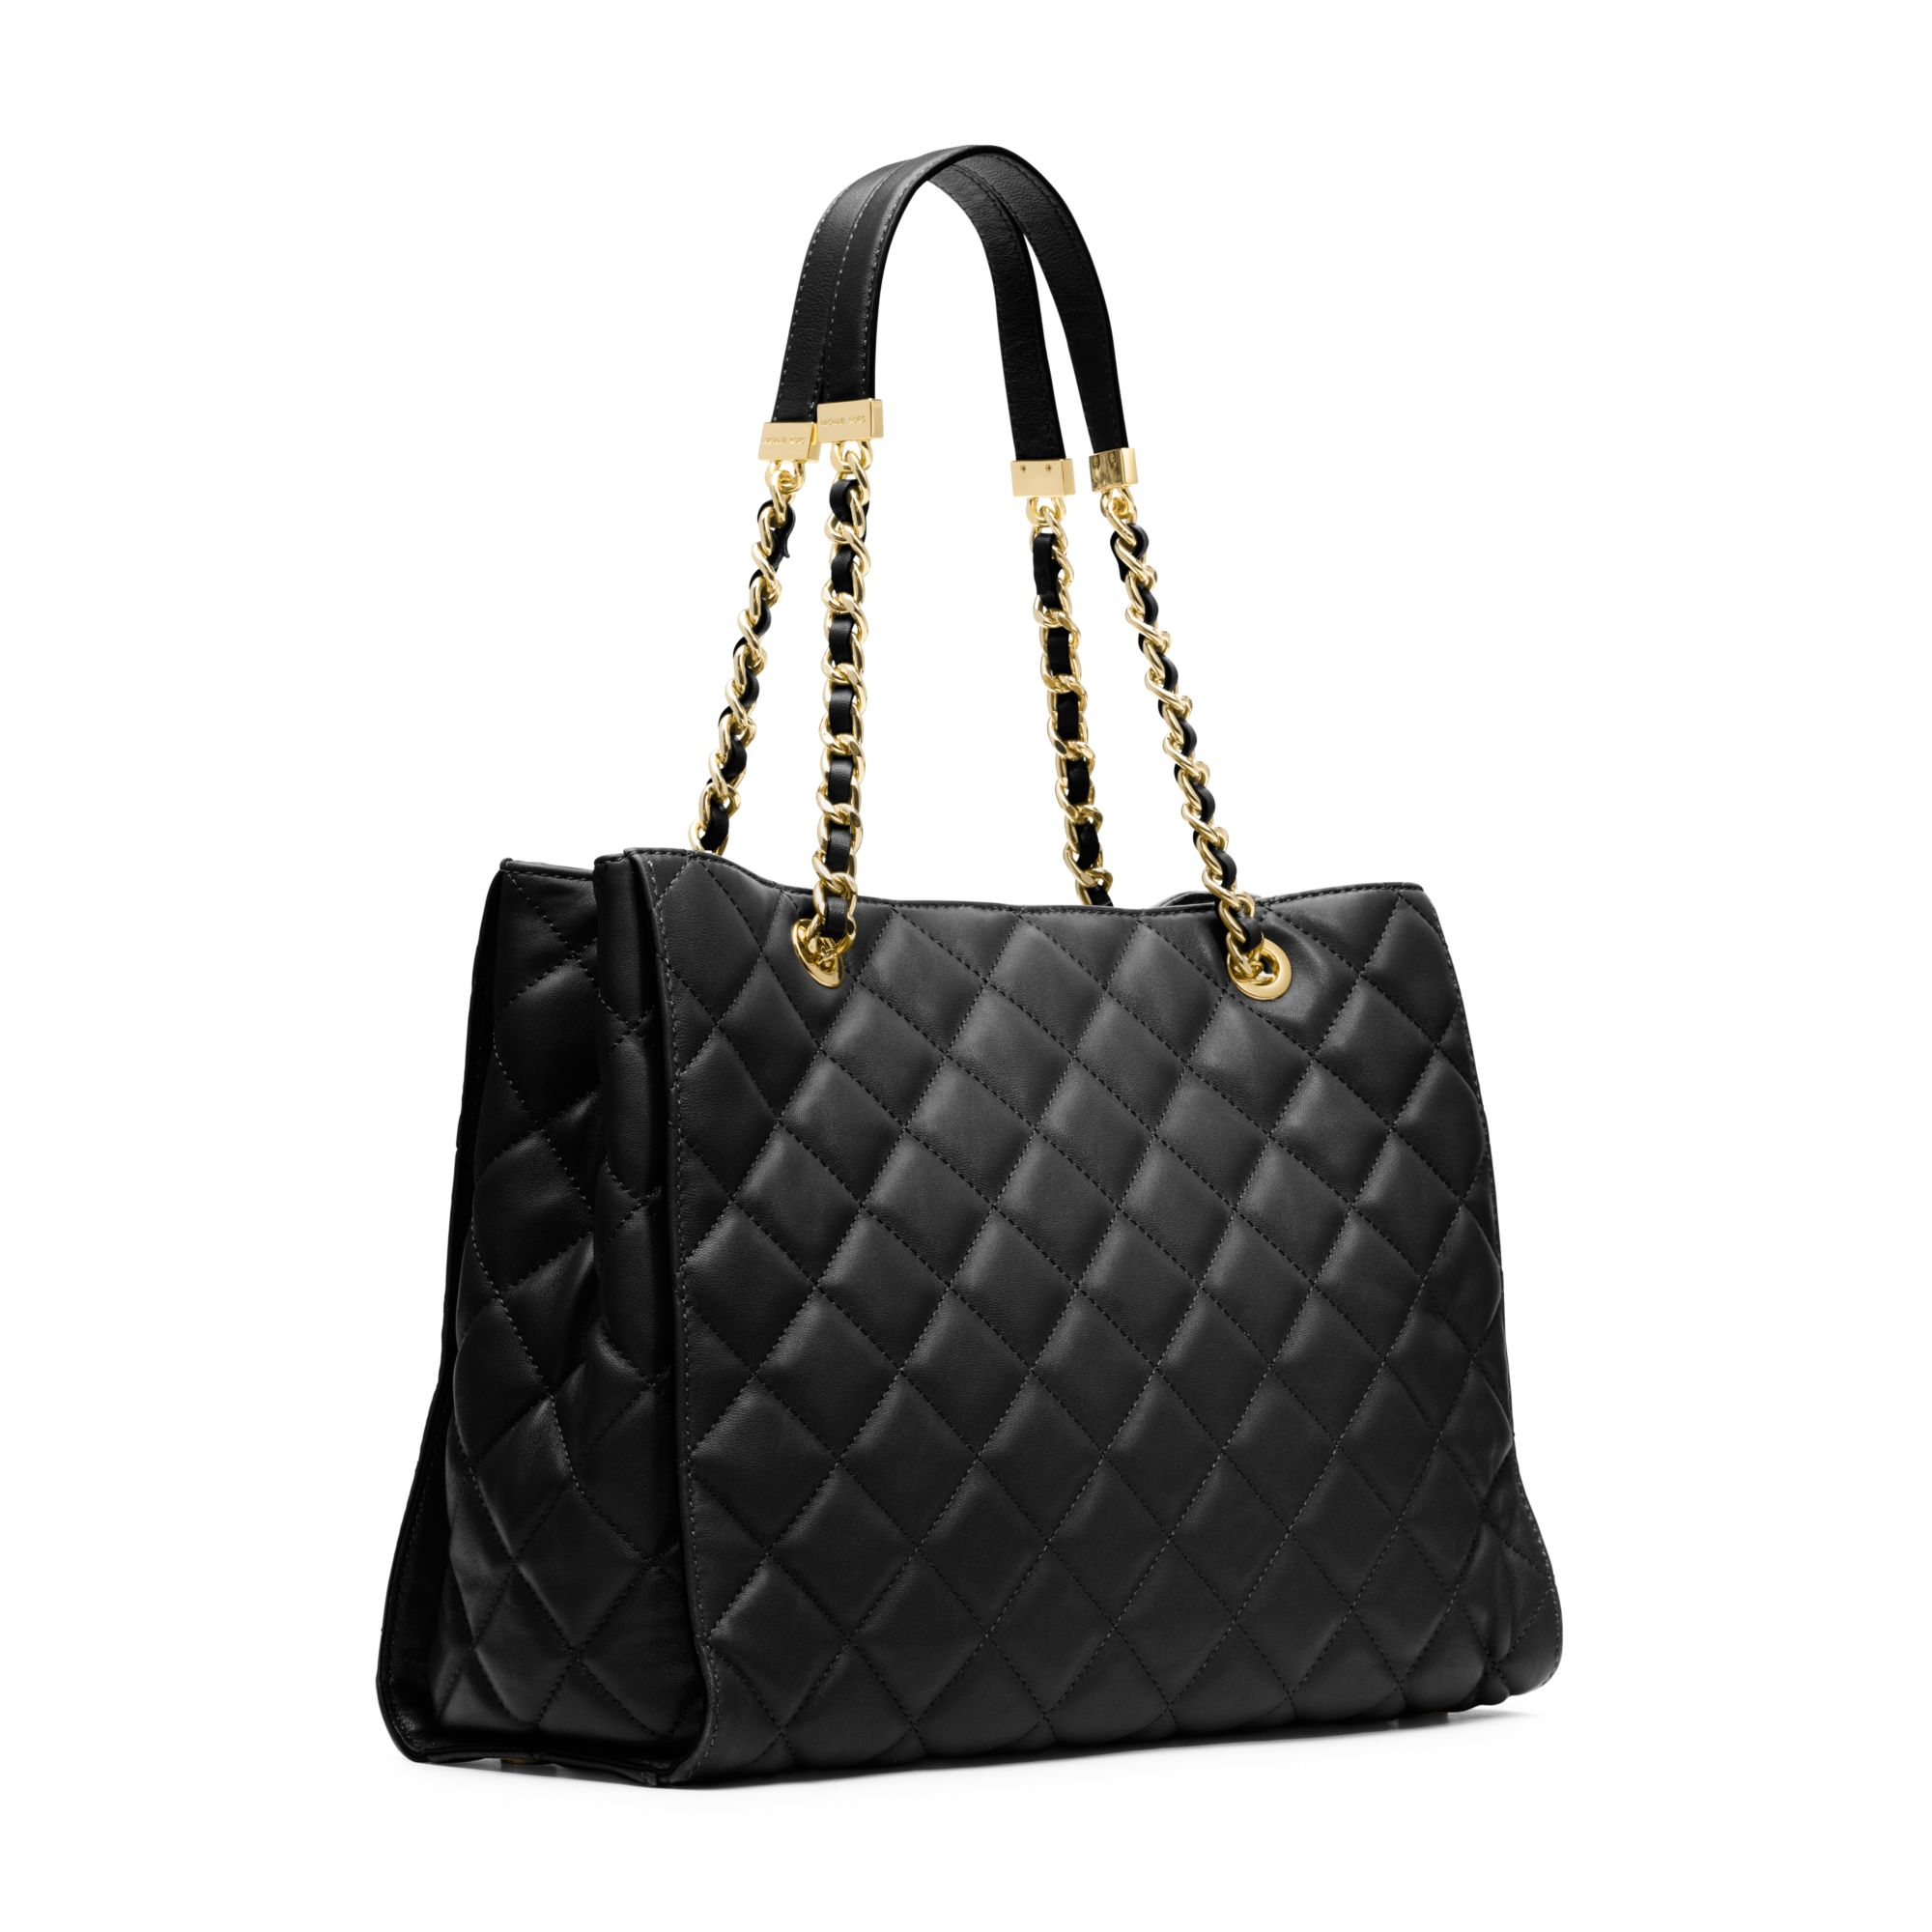 d5171a0d6501 Michael Kors Susannah Quilted Leather Large Tote in Black - Lyst